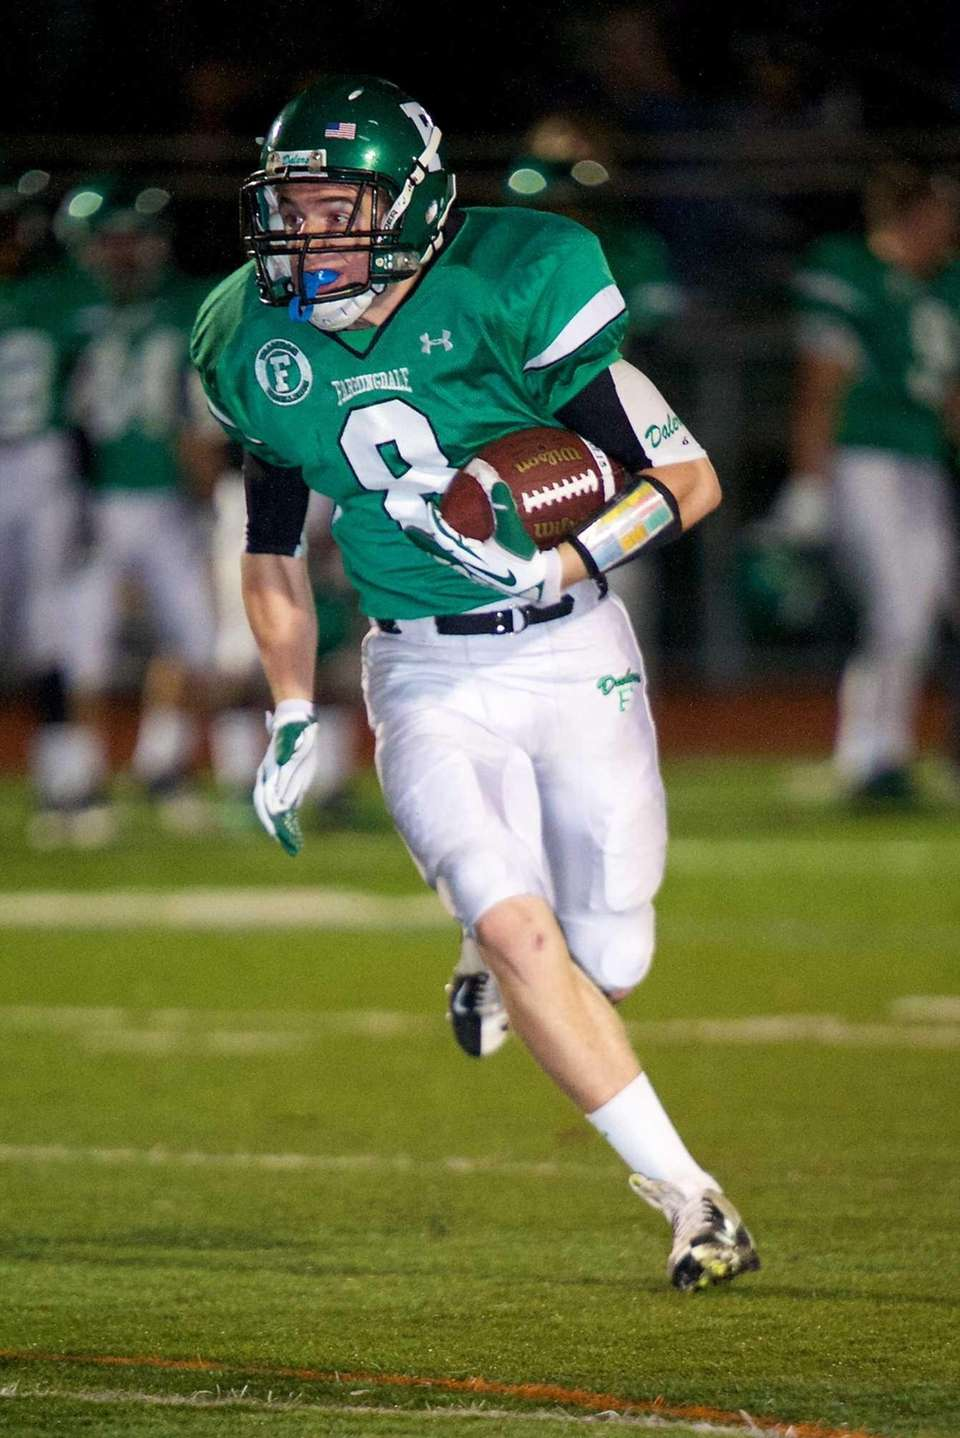 Farmingdale receiver Tom Kennedy sprints toward the endzone